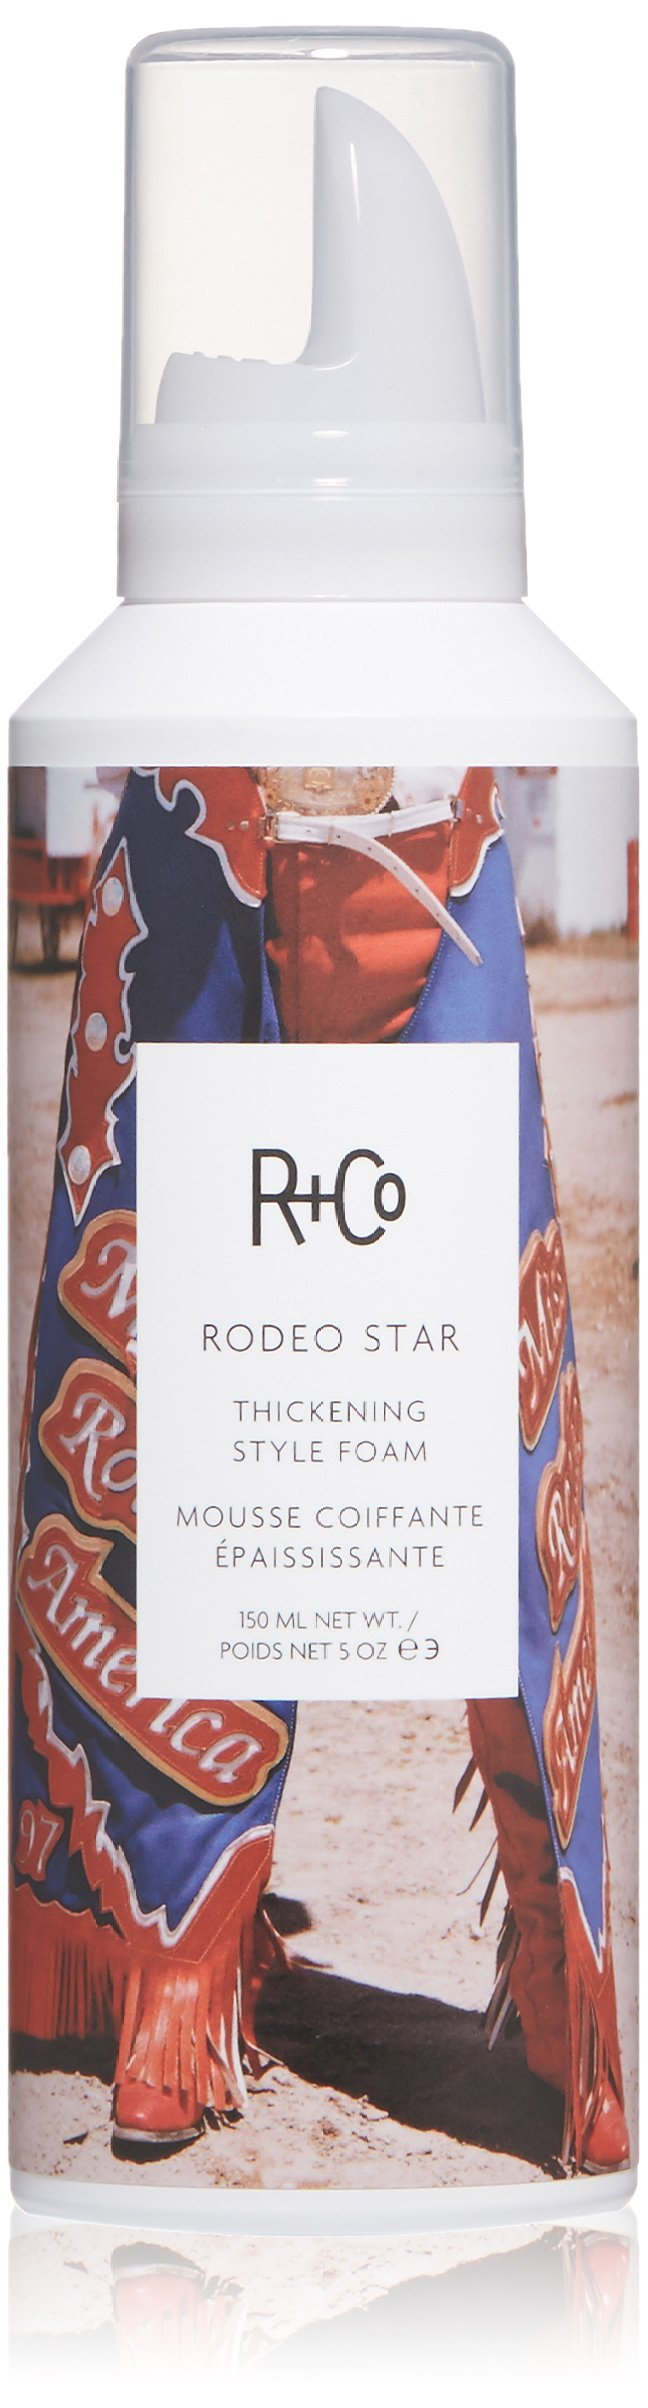 R+Co Rodeo Star Thickening Style Foam, 5 oz.